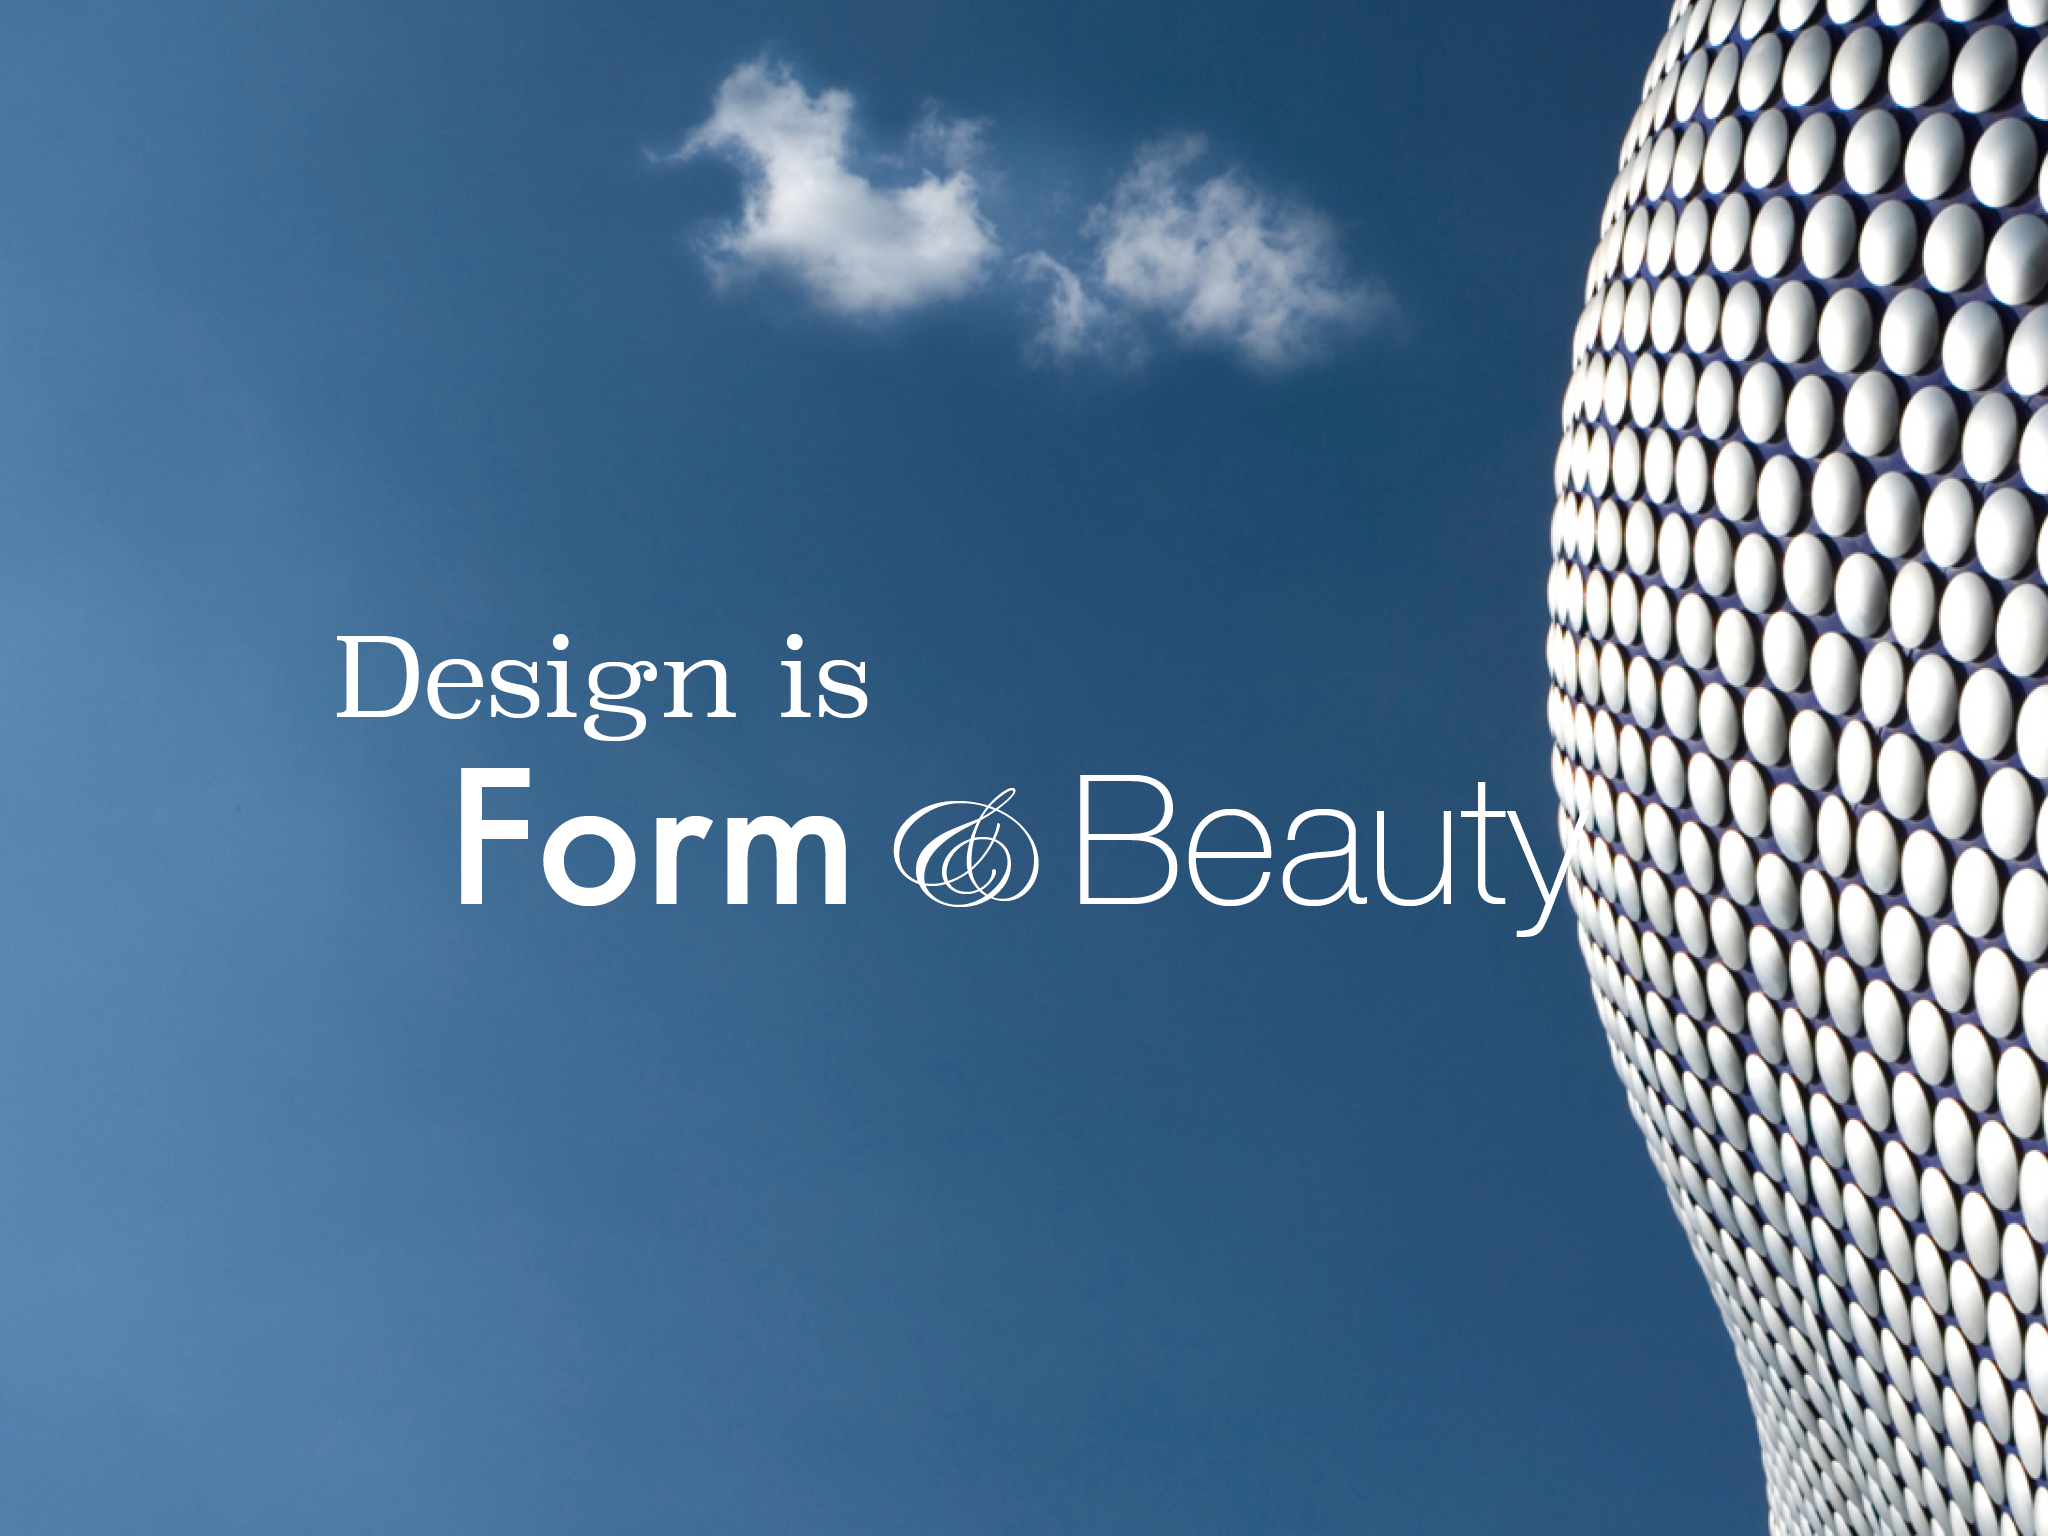 Design is form and beauty6